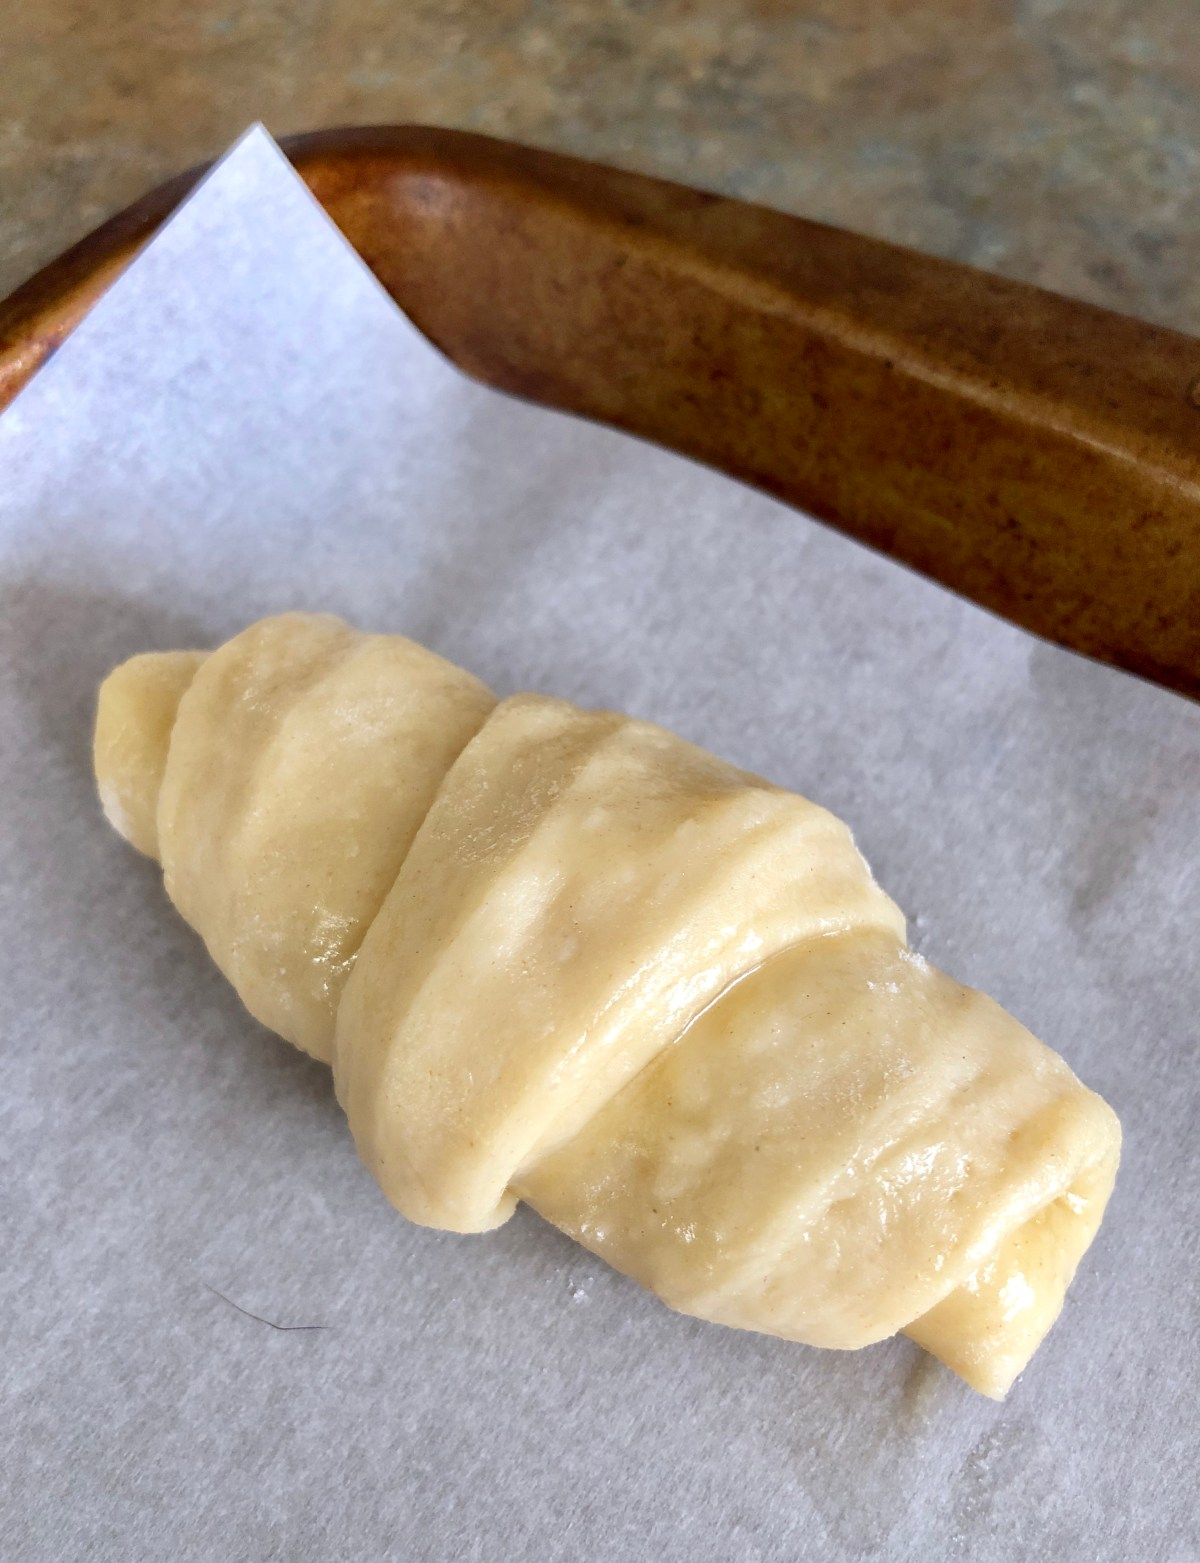 Crescent roll on a parchment lined baking sheet.